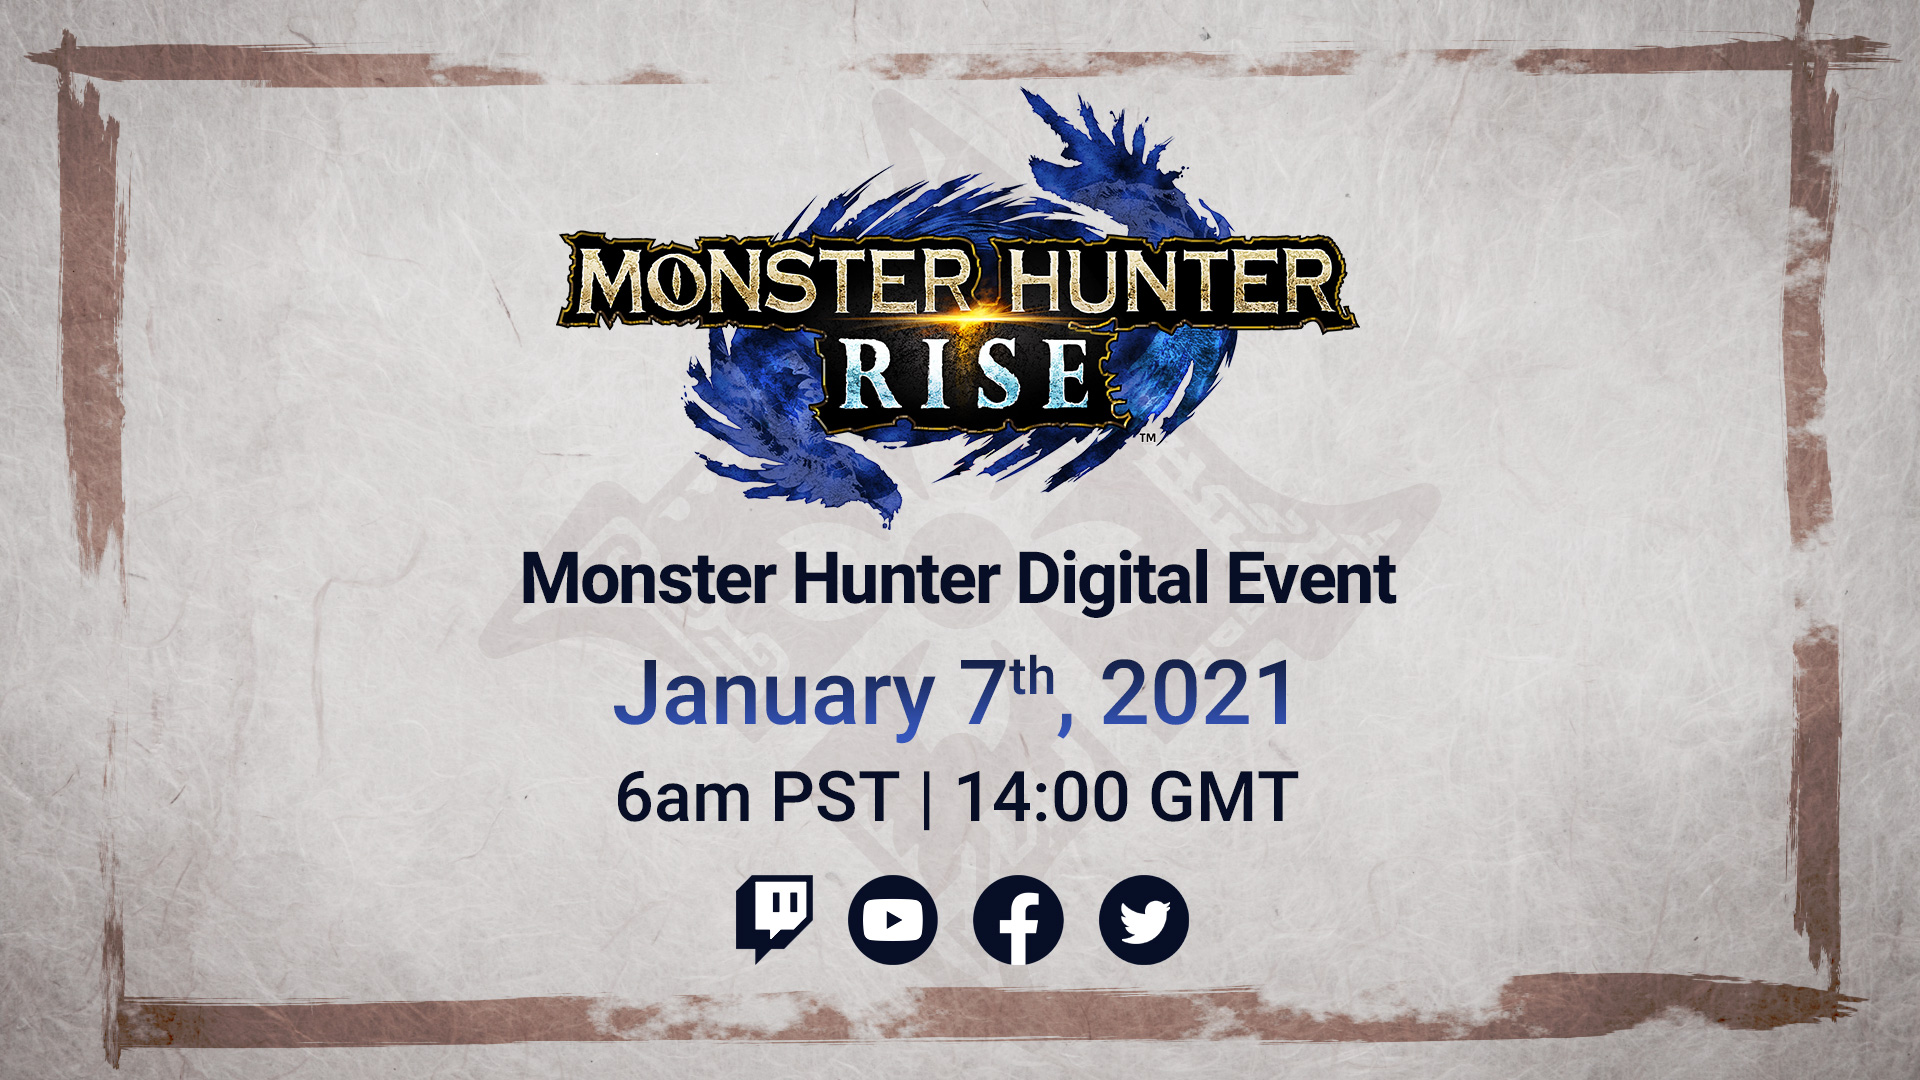 Monster Hunter Rise Digitial Event